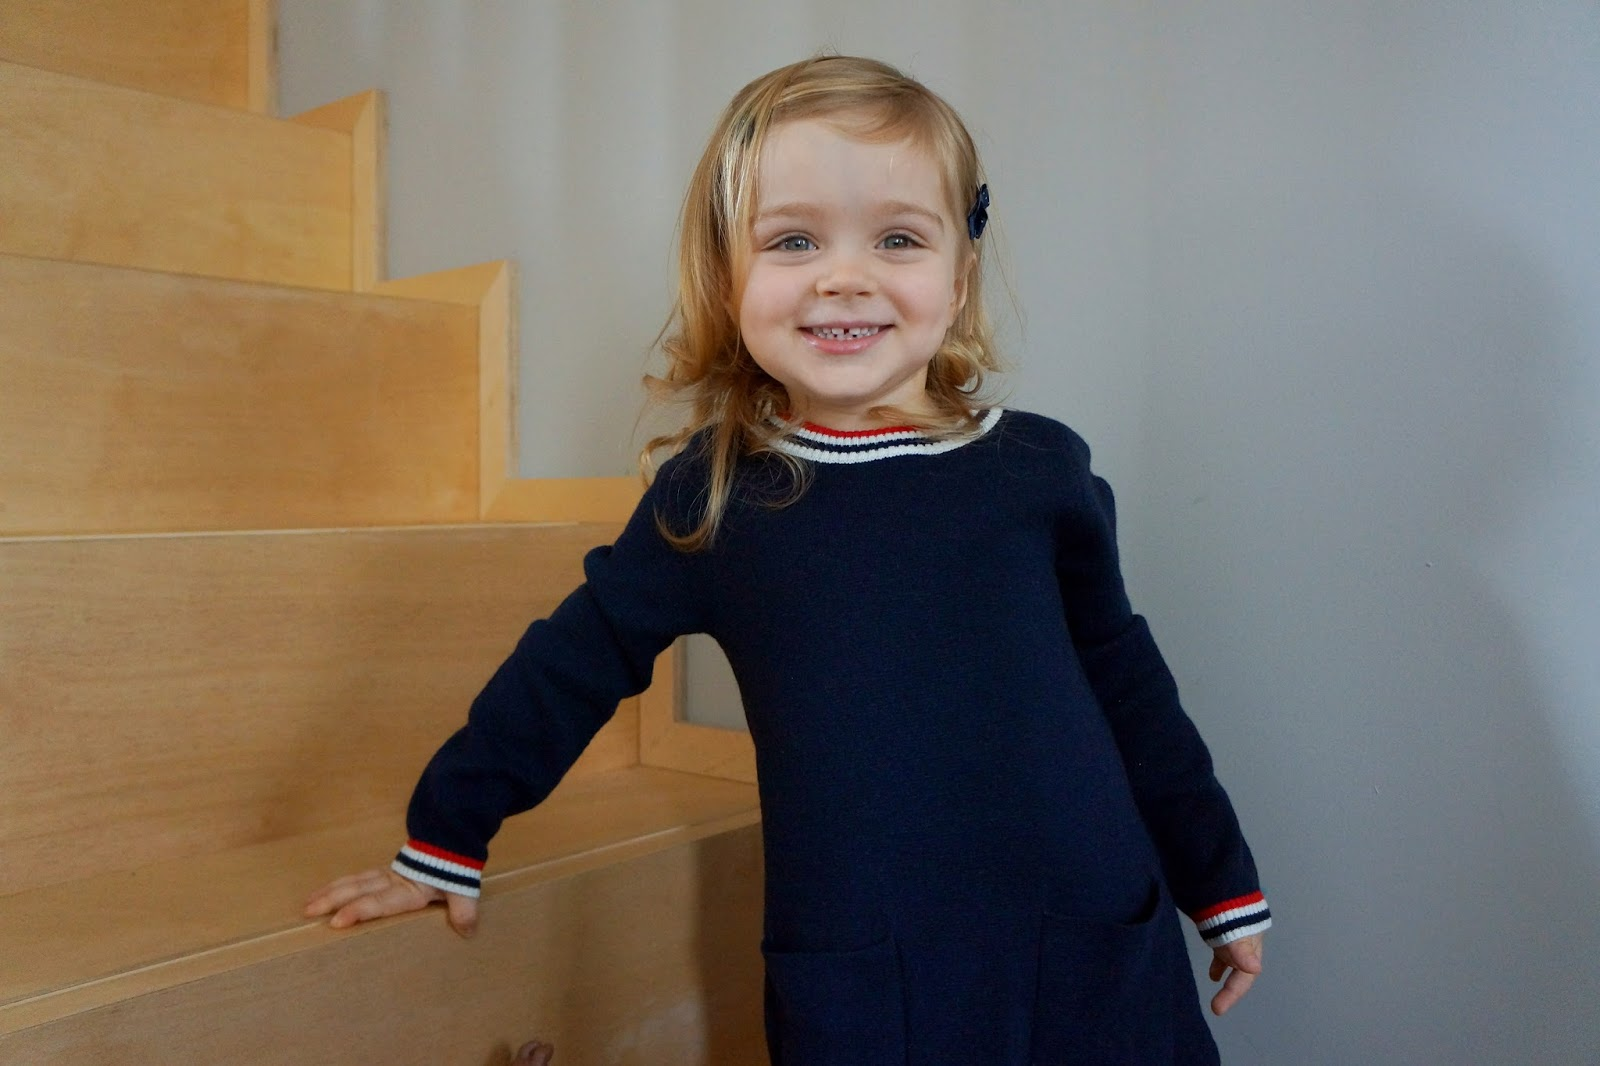 jacadi girl winter 2015 french preppy children's fashion wool dark blue dress white and red accents